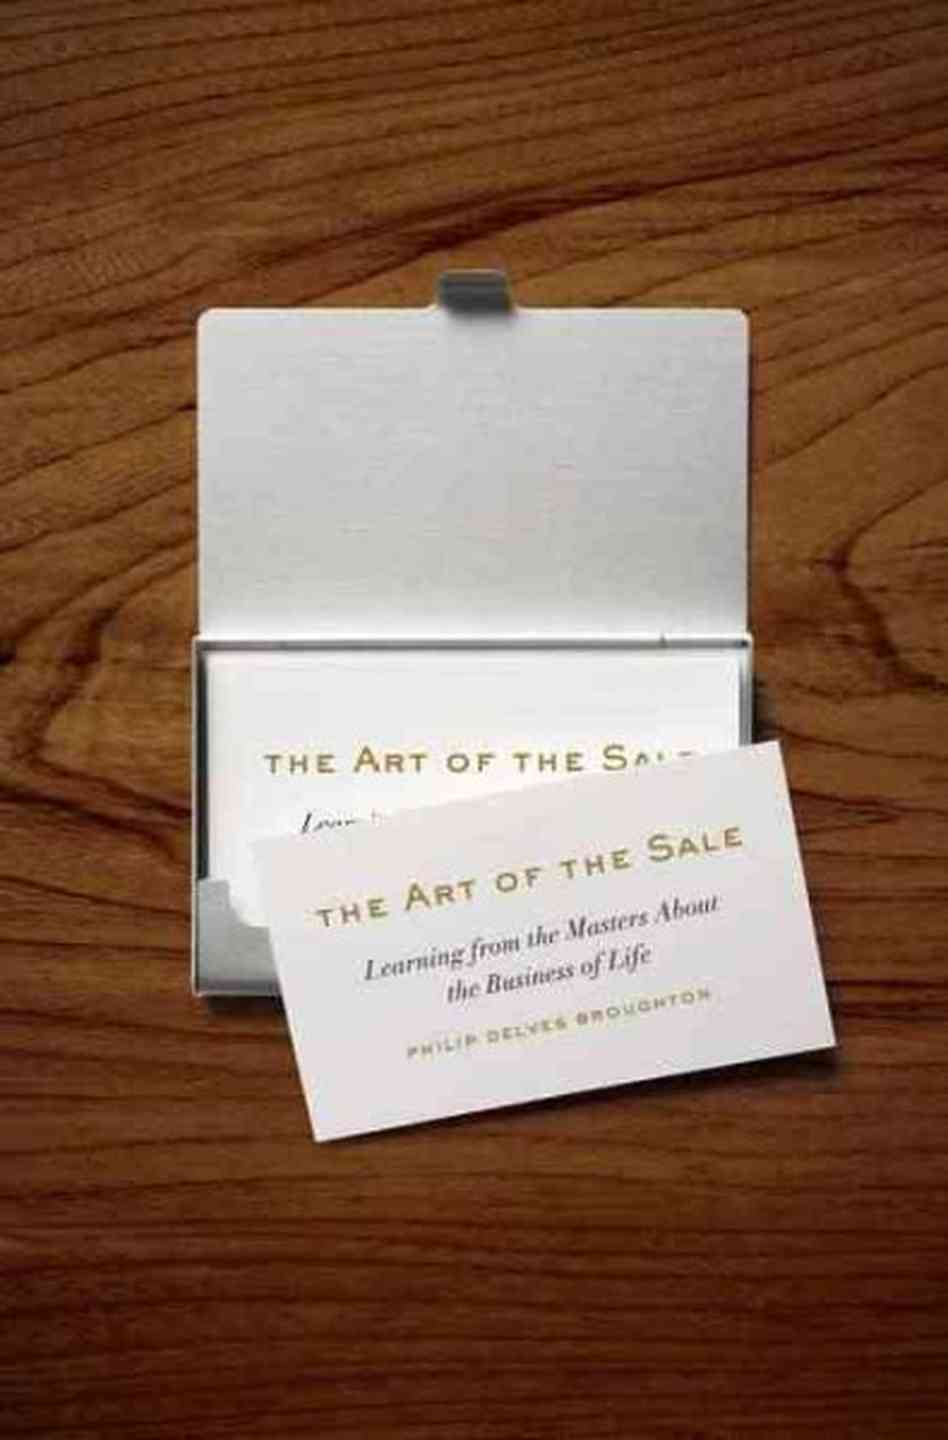 The Art of the Sale: Learning from the Masters About the Business of Life Philip Delves Broughton